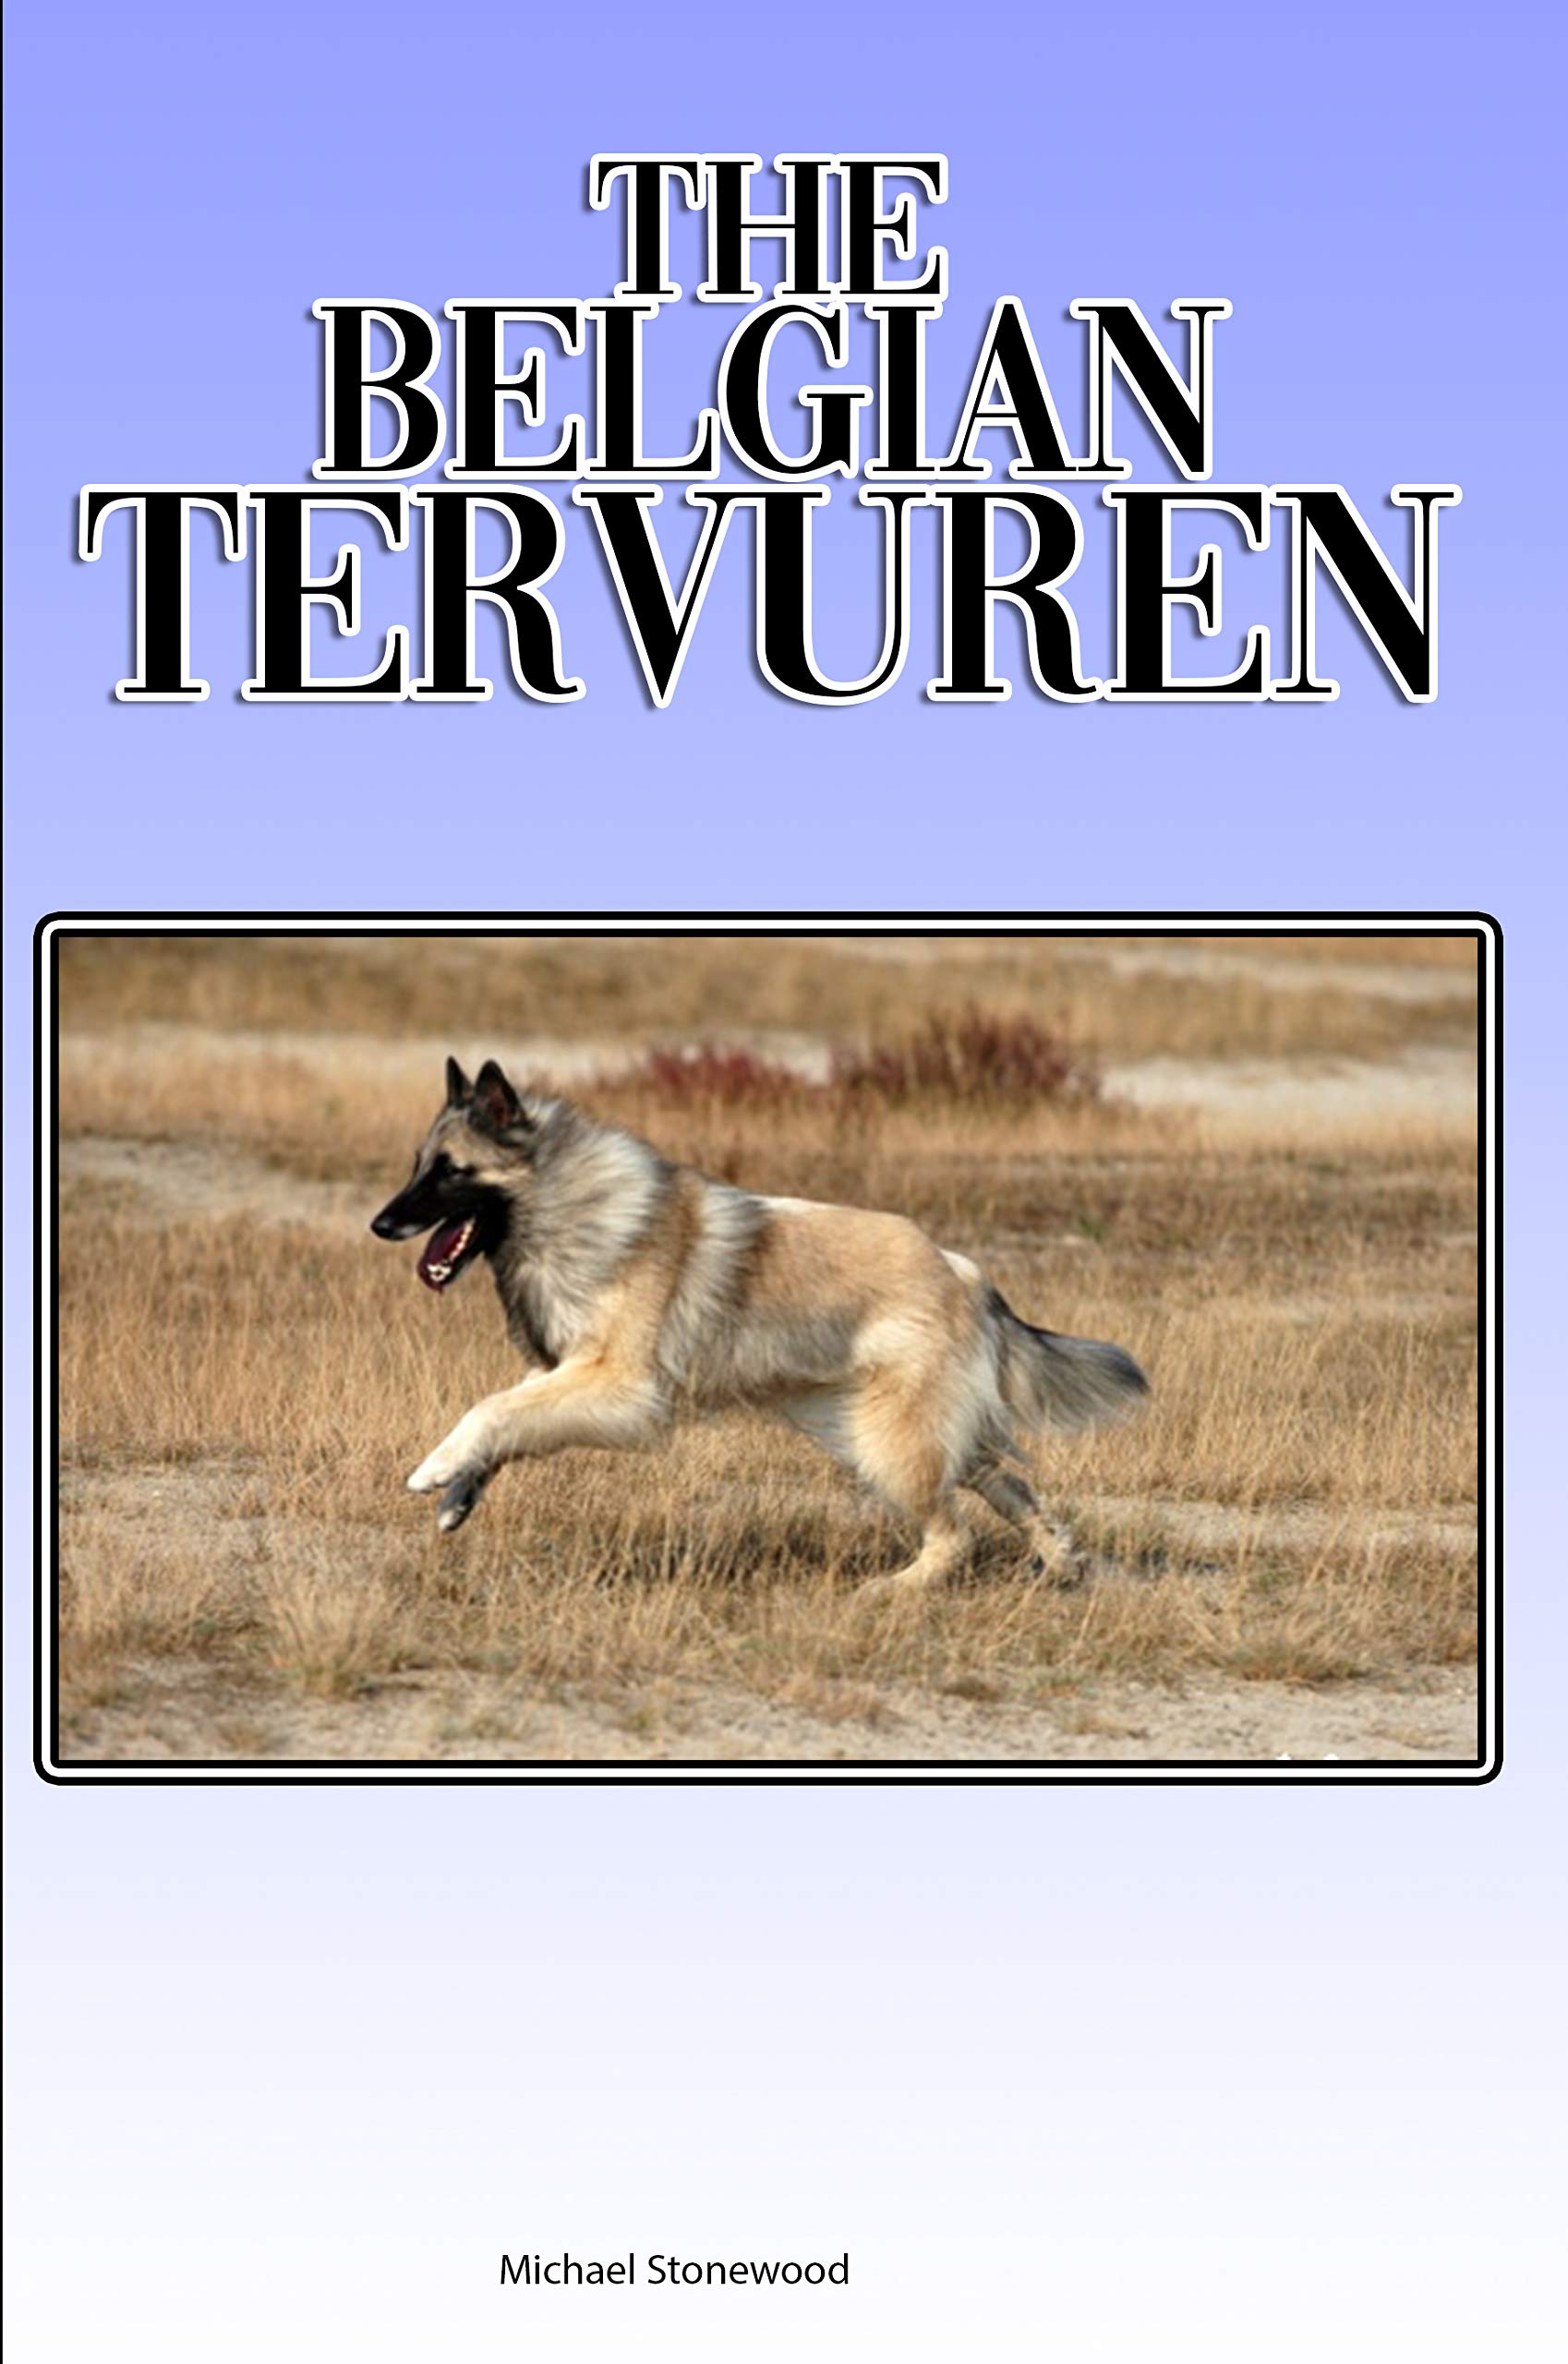 The Belgian Tervuren: A Complete and Comprehensive Beginners Guide to: Buying, Owning, Health, Grooming, Training, Obedience, Understanding and Caring for Your Belgian Tervuren